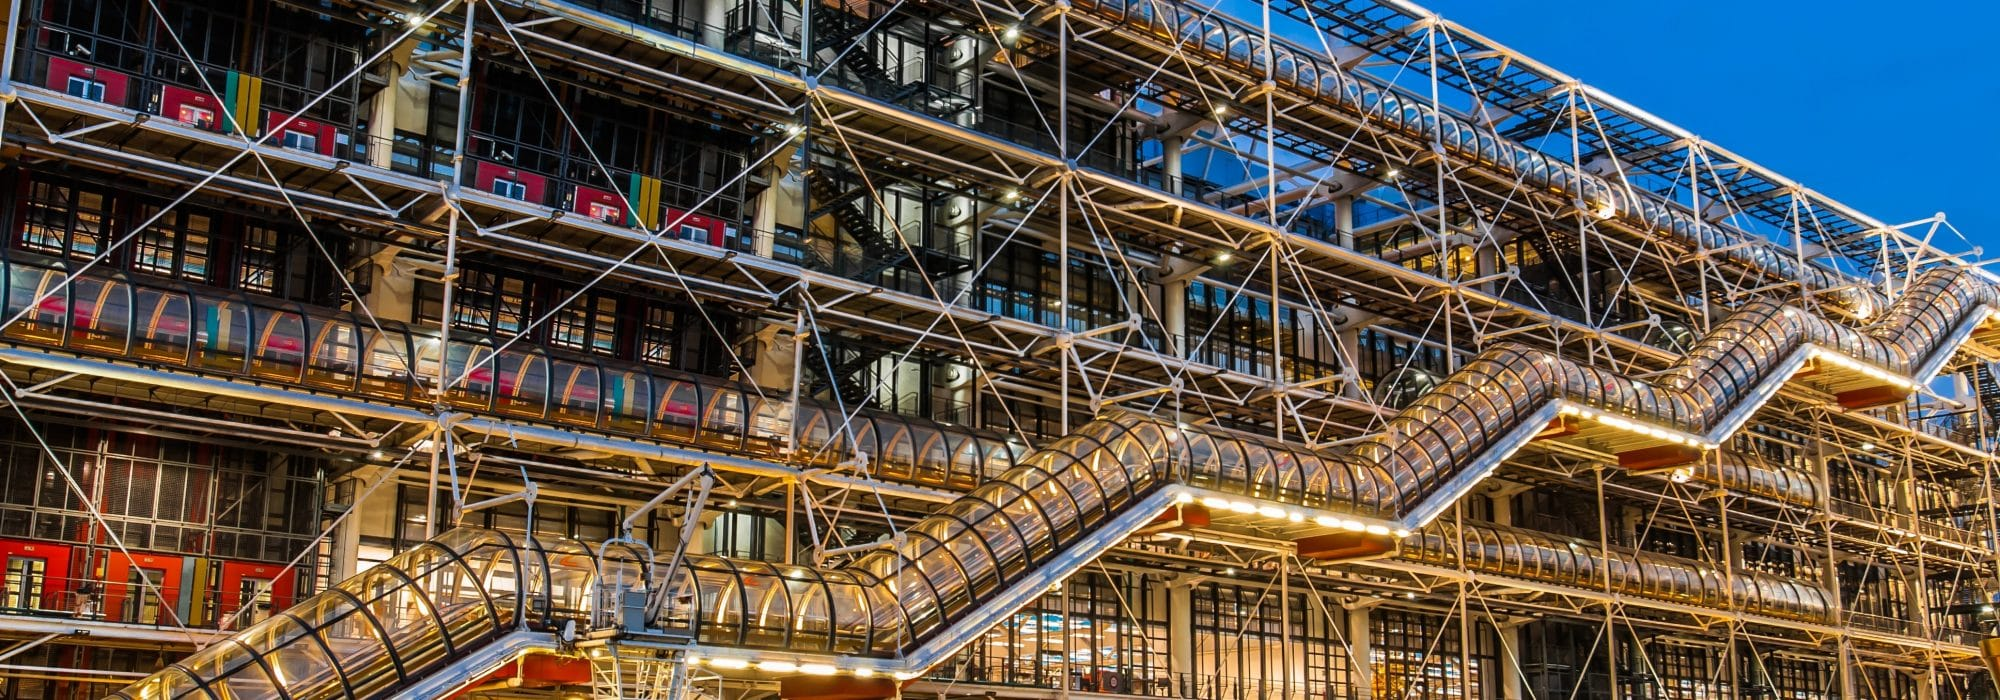 Photo du centre Pompidou à Paris pour représenter IXIS Paris